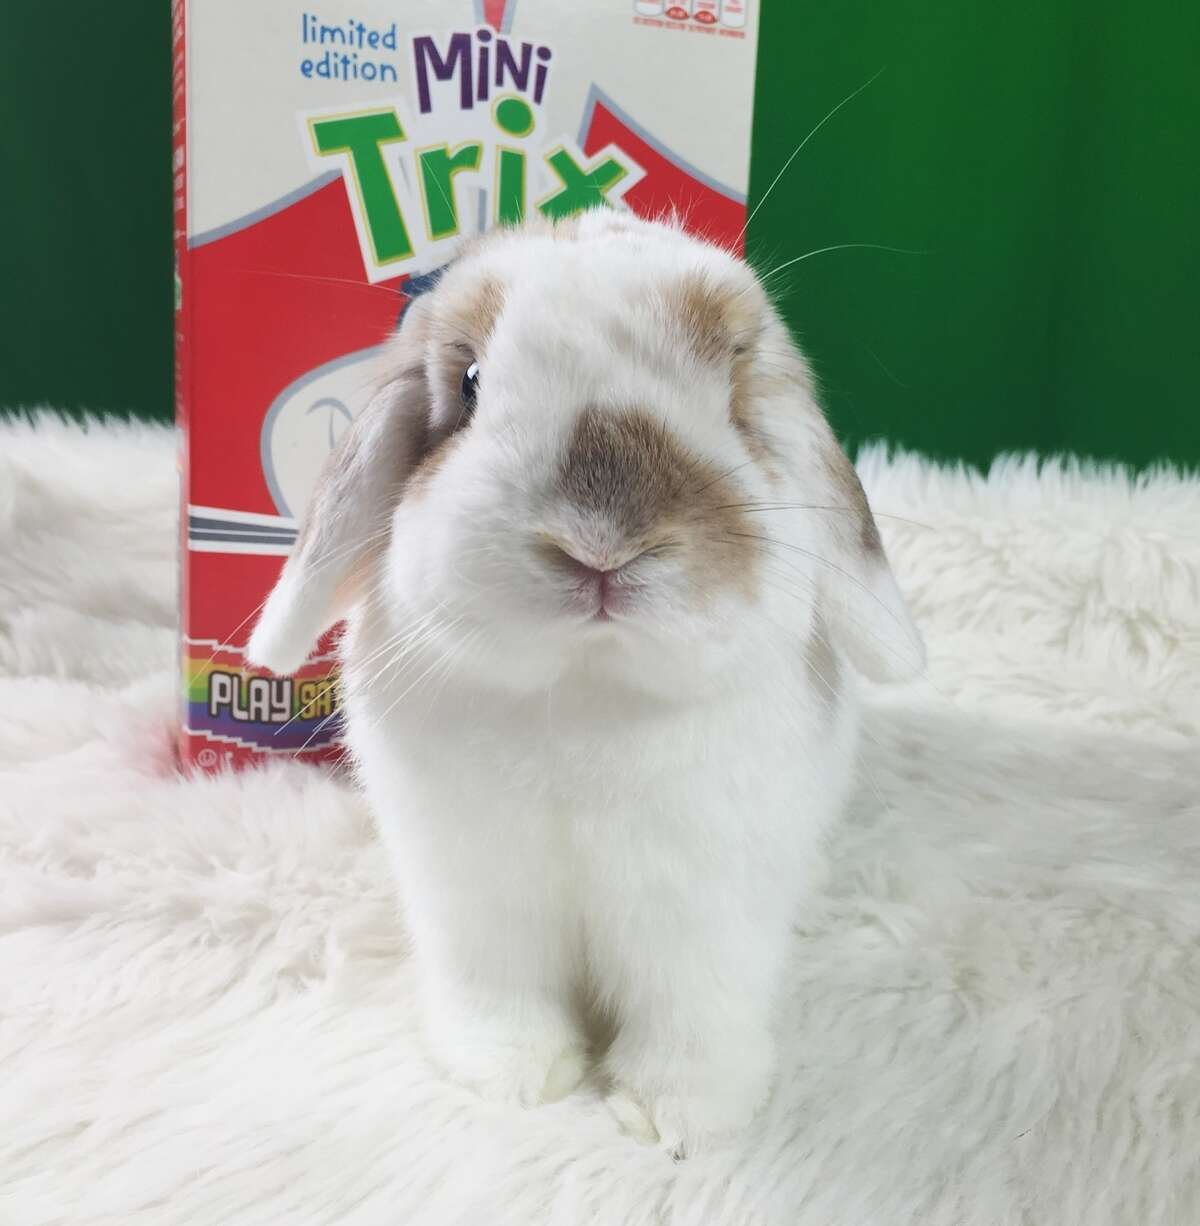 America's Next Top Bunny Trix Cereal put out a call for a new Trix Rabbit a couple of months ago, and this Houston bunny, Cinnabun, was the winner.